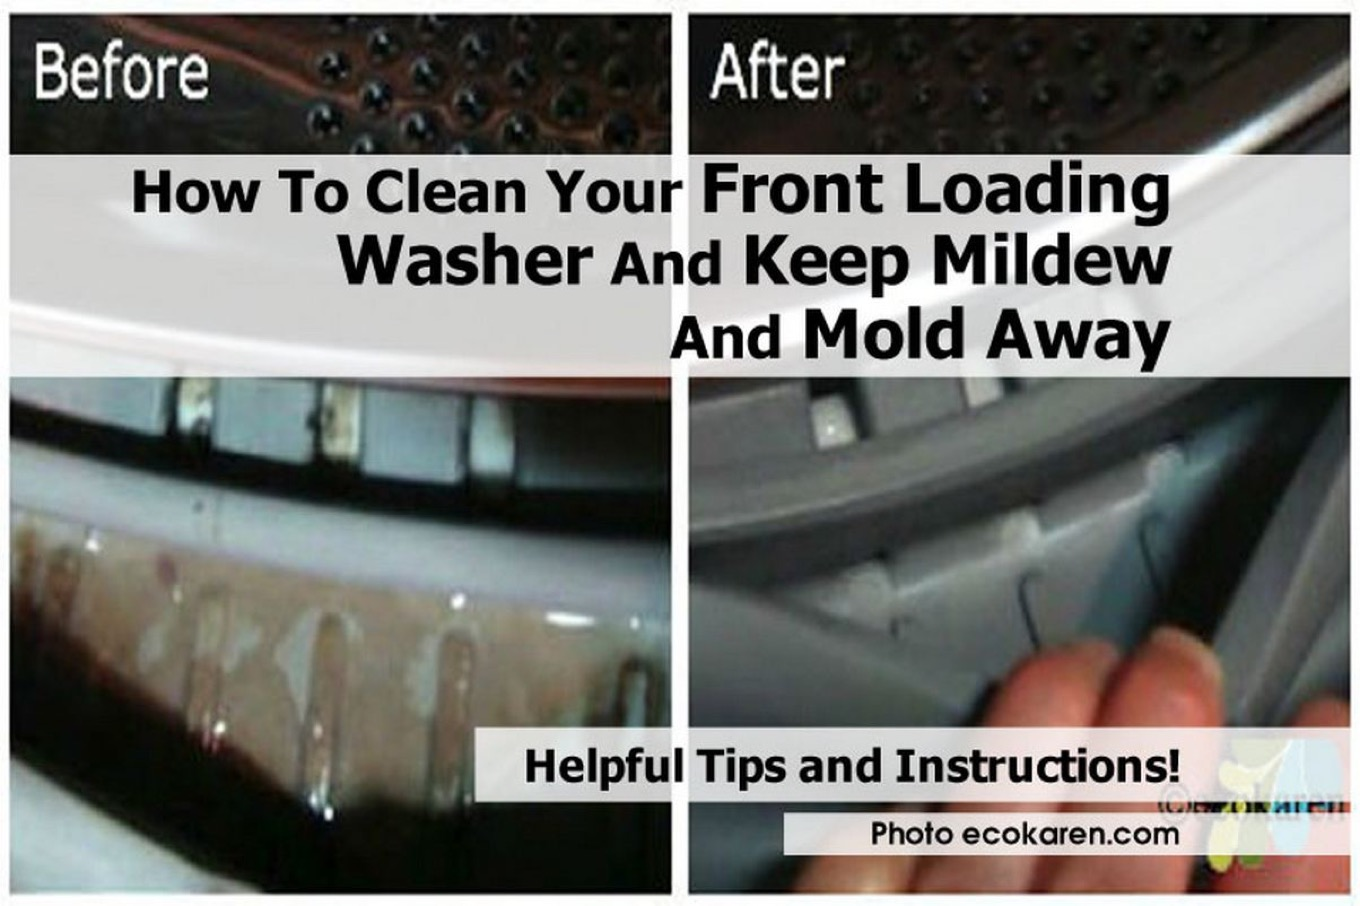 How To Clean Your Front Loading Washer And Keep Mildew And